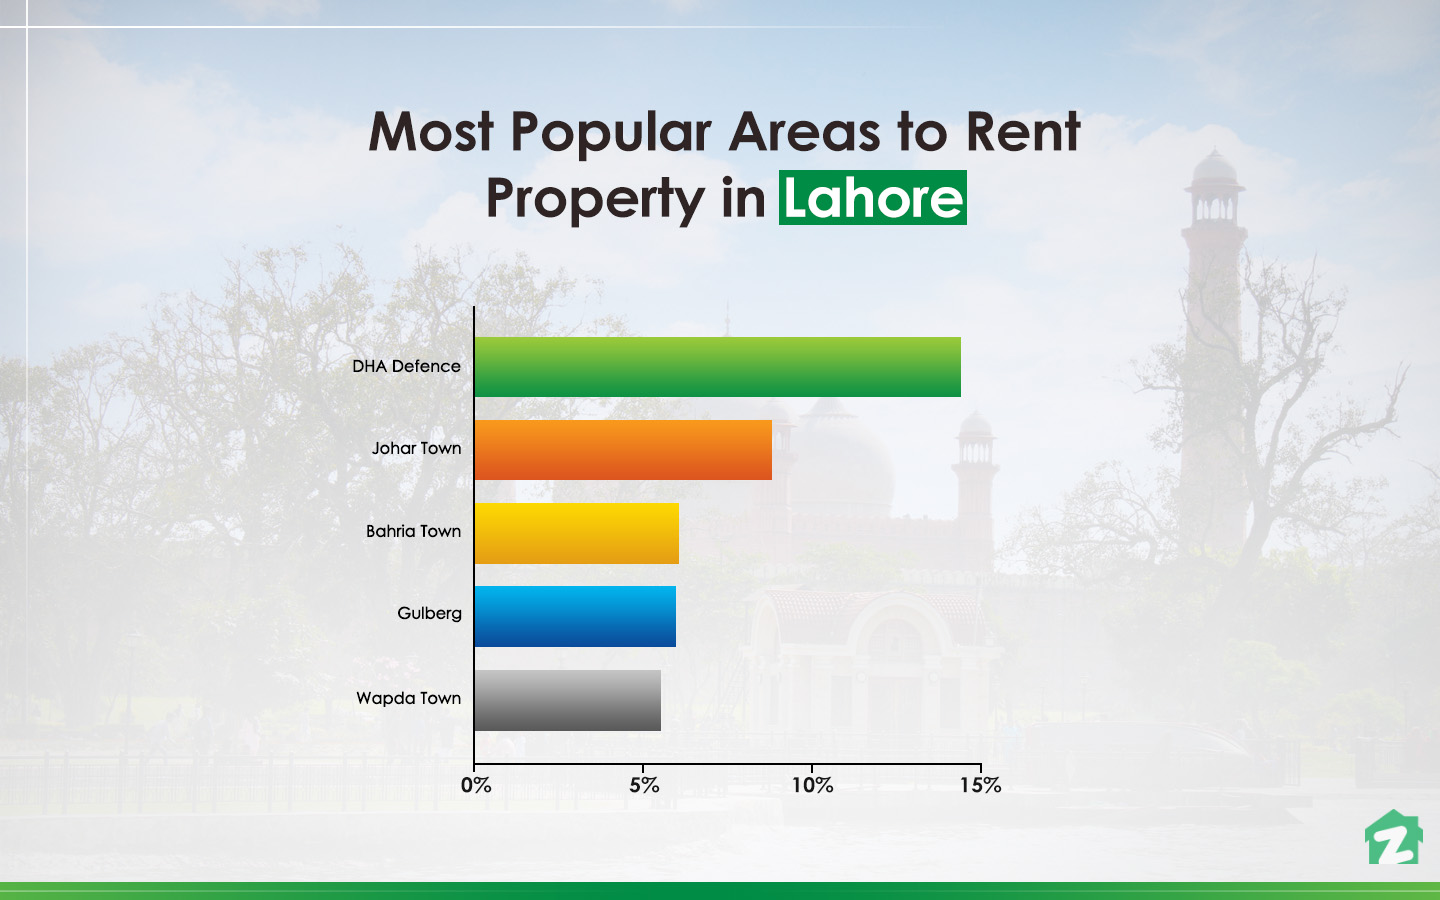 famous areas in Lahore for renting properties